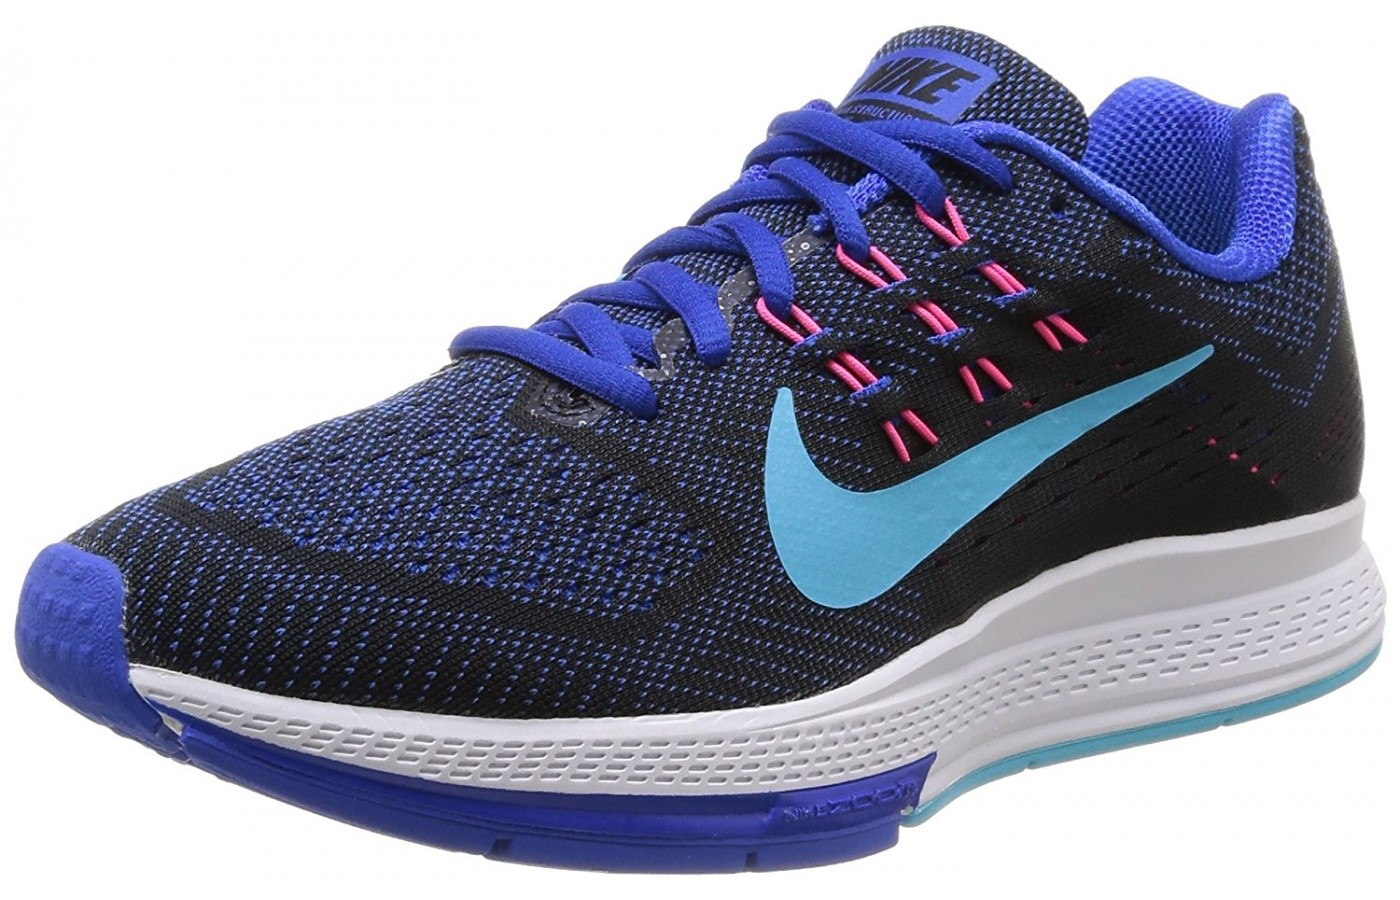 Nike Air Zoom Structure 18 Reviewed & Tested